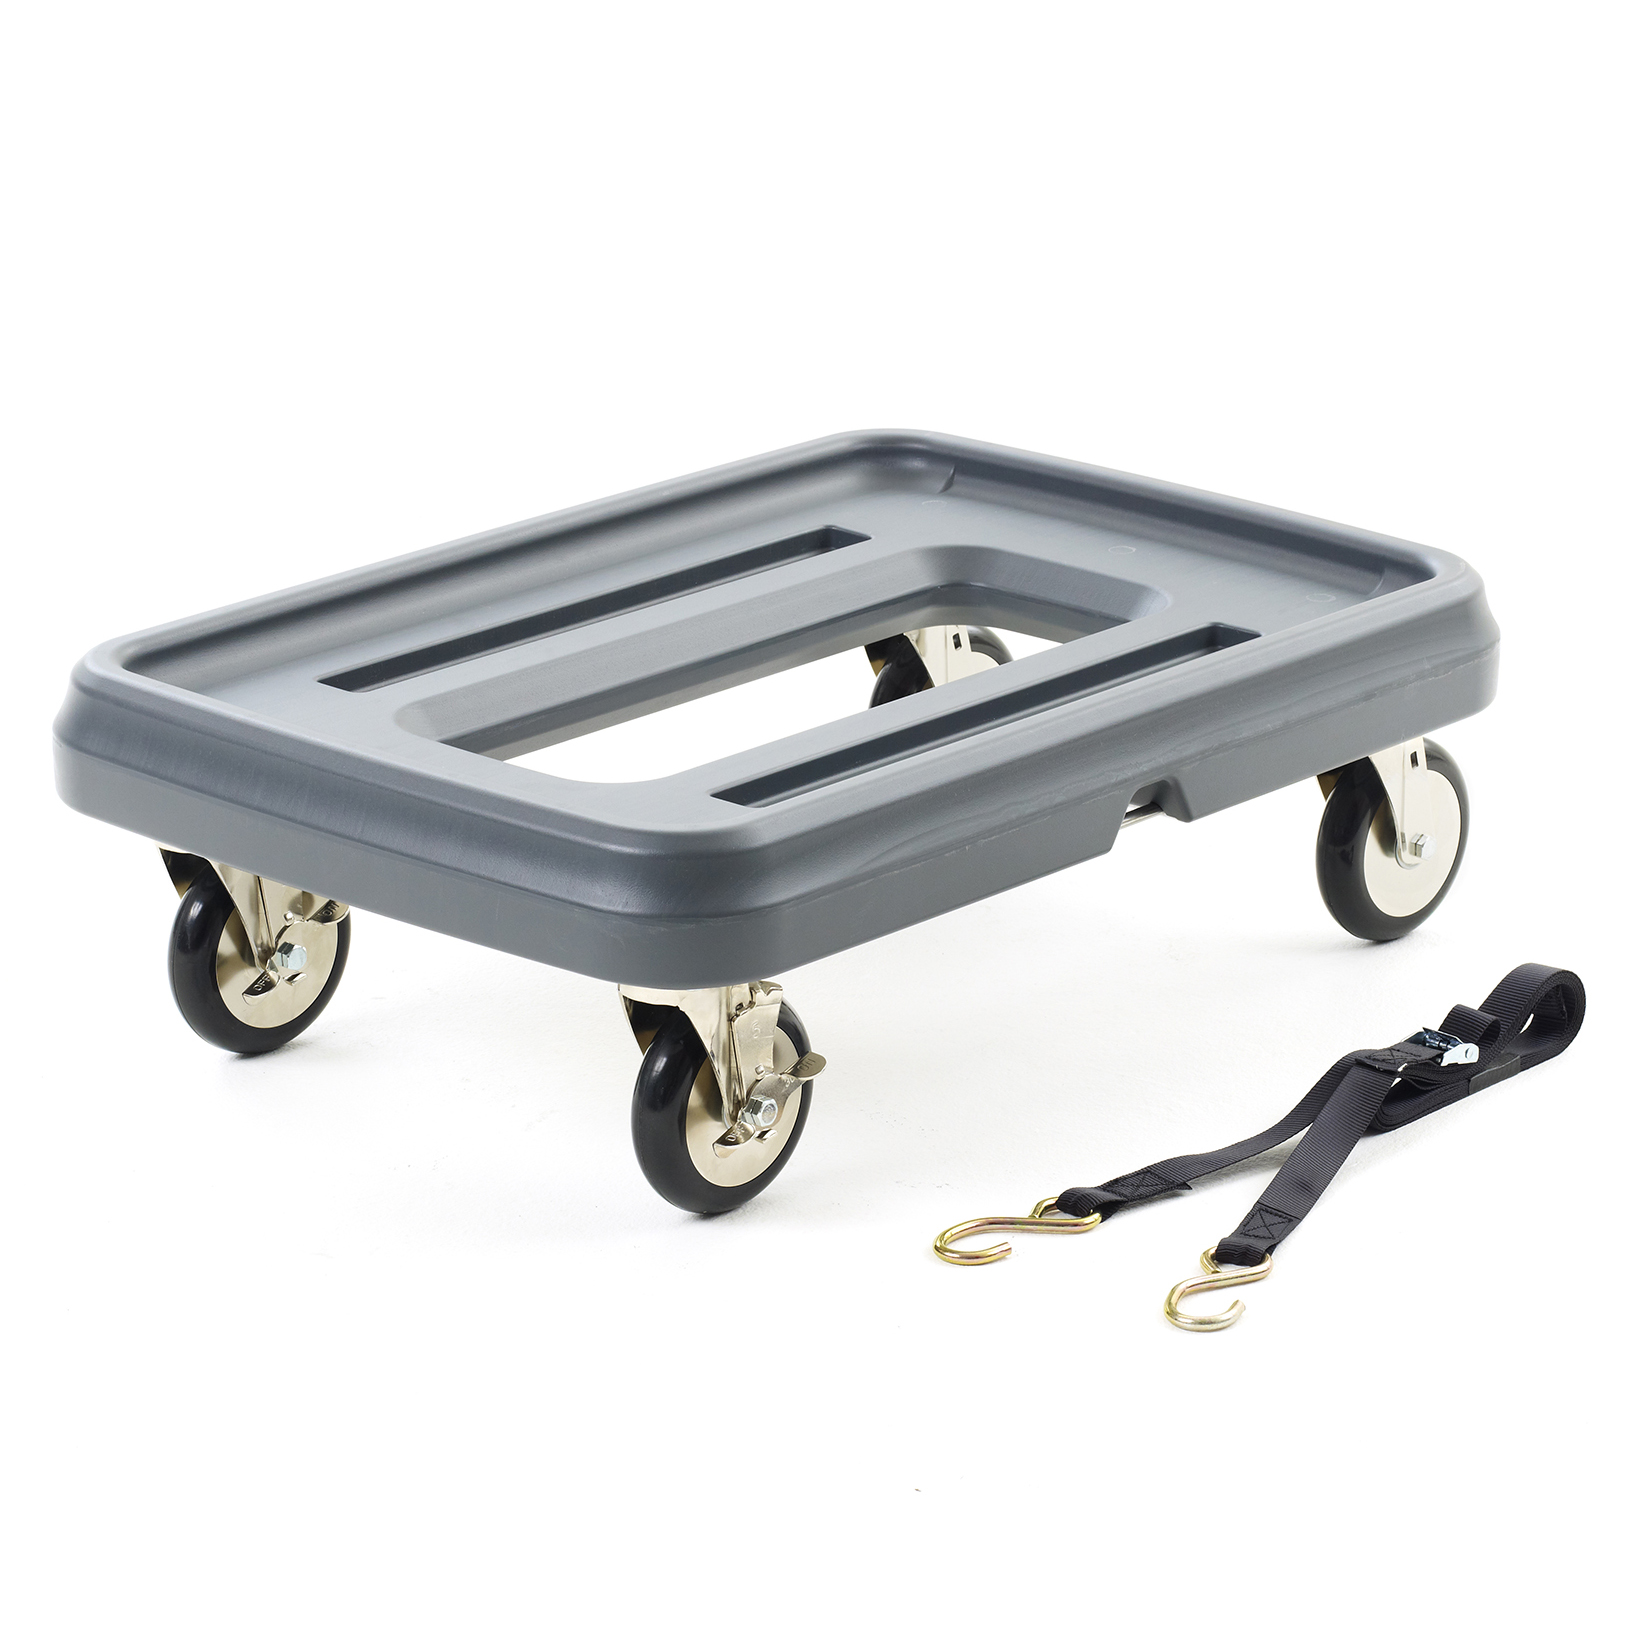 Metro MLD1 food holding & transport/insulated food carriers